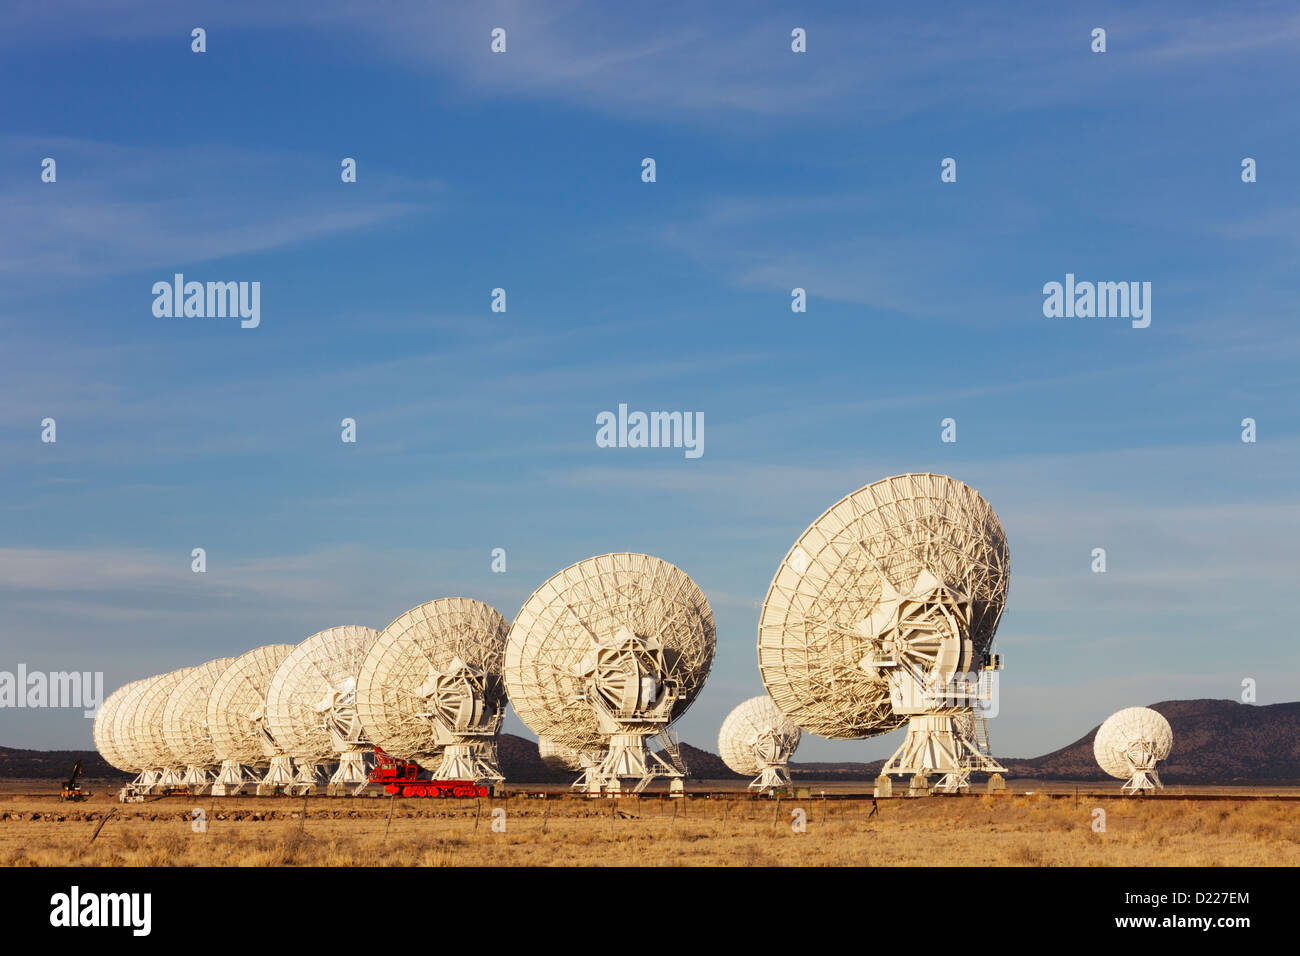 Radio telescope dishes in the Very Large Array (VLA), New Mexico, USA. Stock Photo